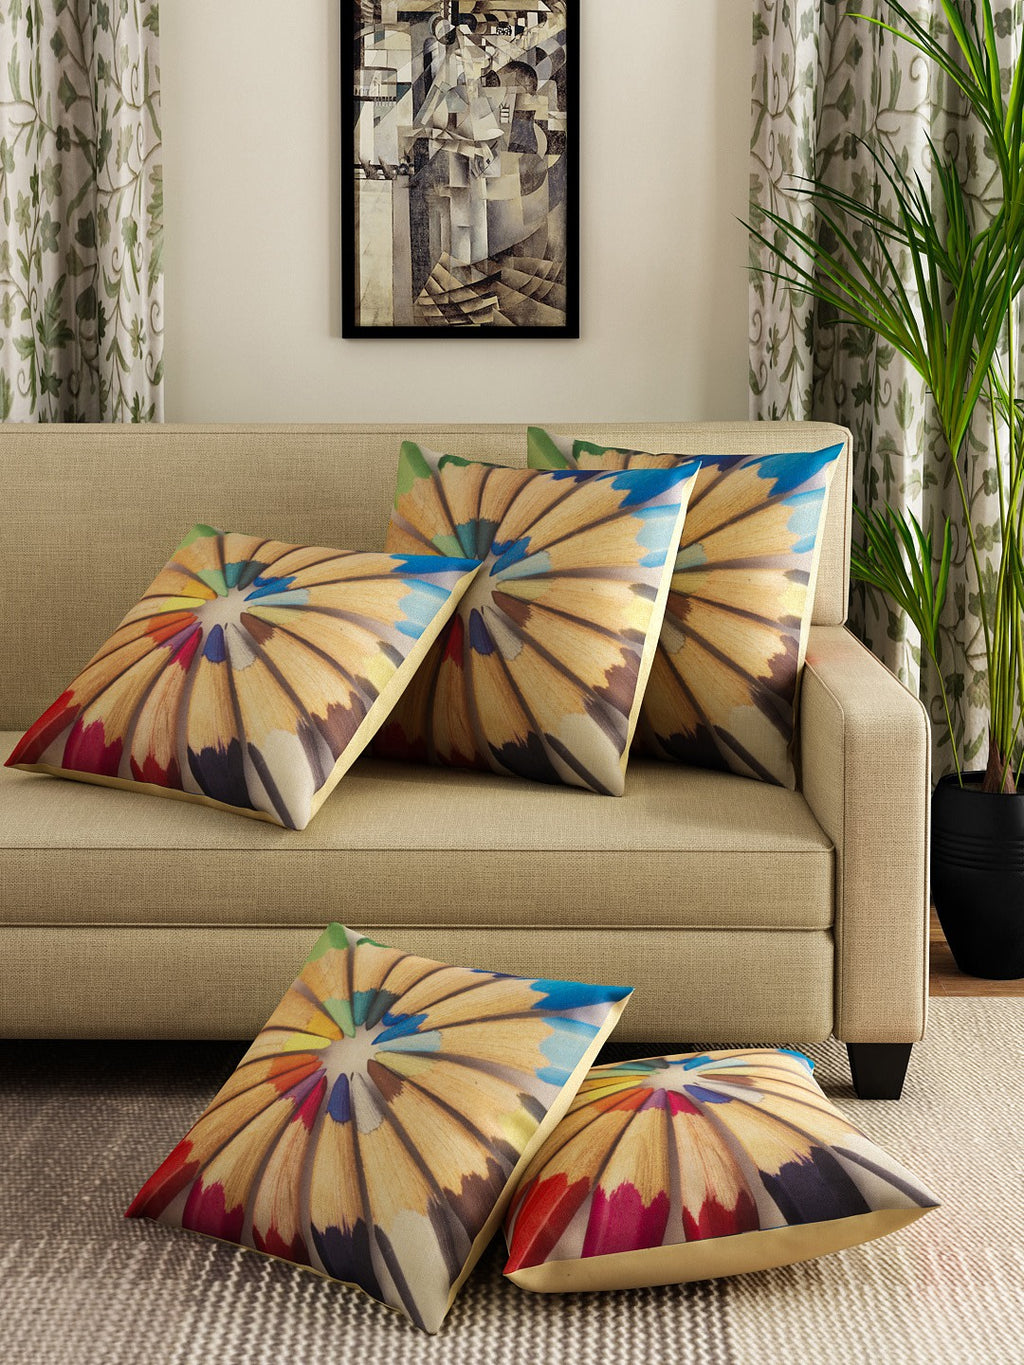 Detec™ Hosta Multi Color Printed 16 x 16 inches Cushion Cover (Set of 5 )